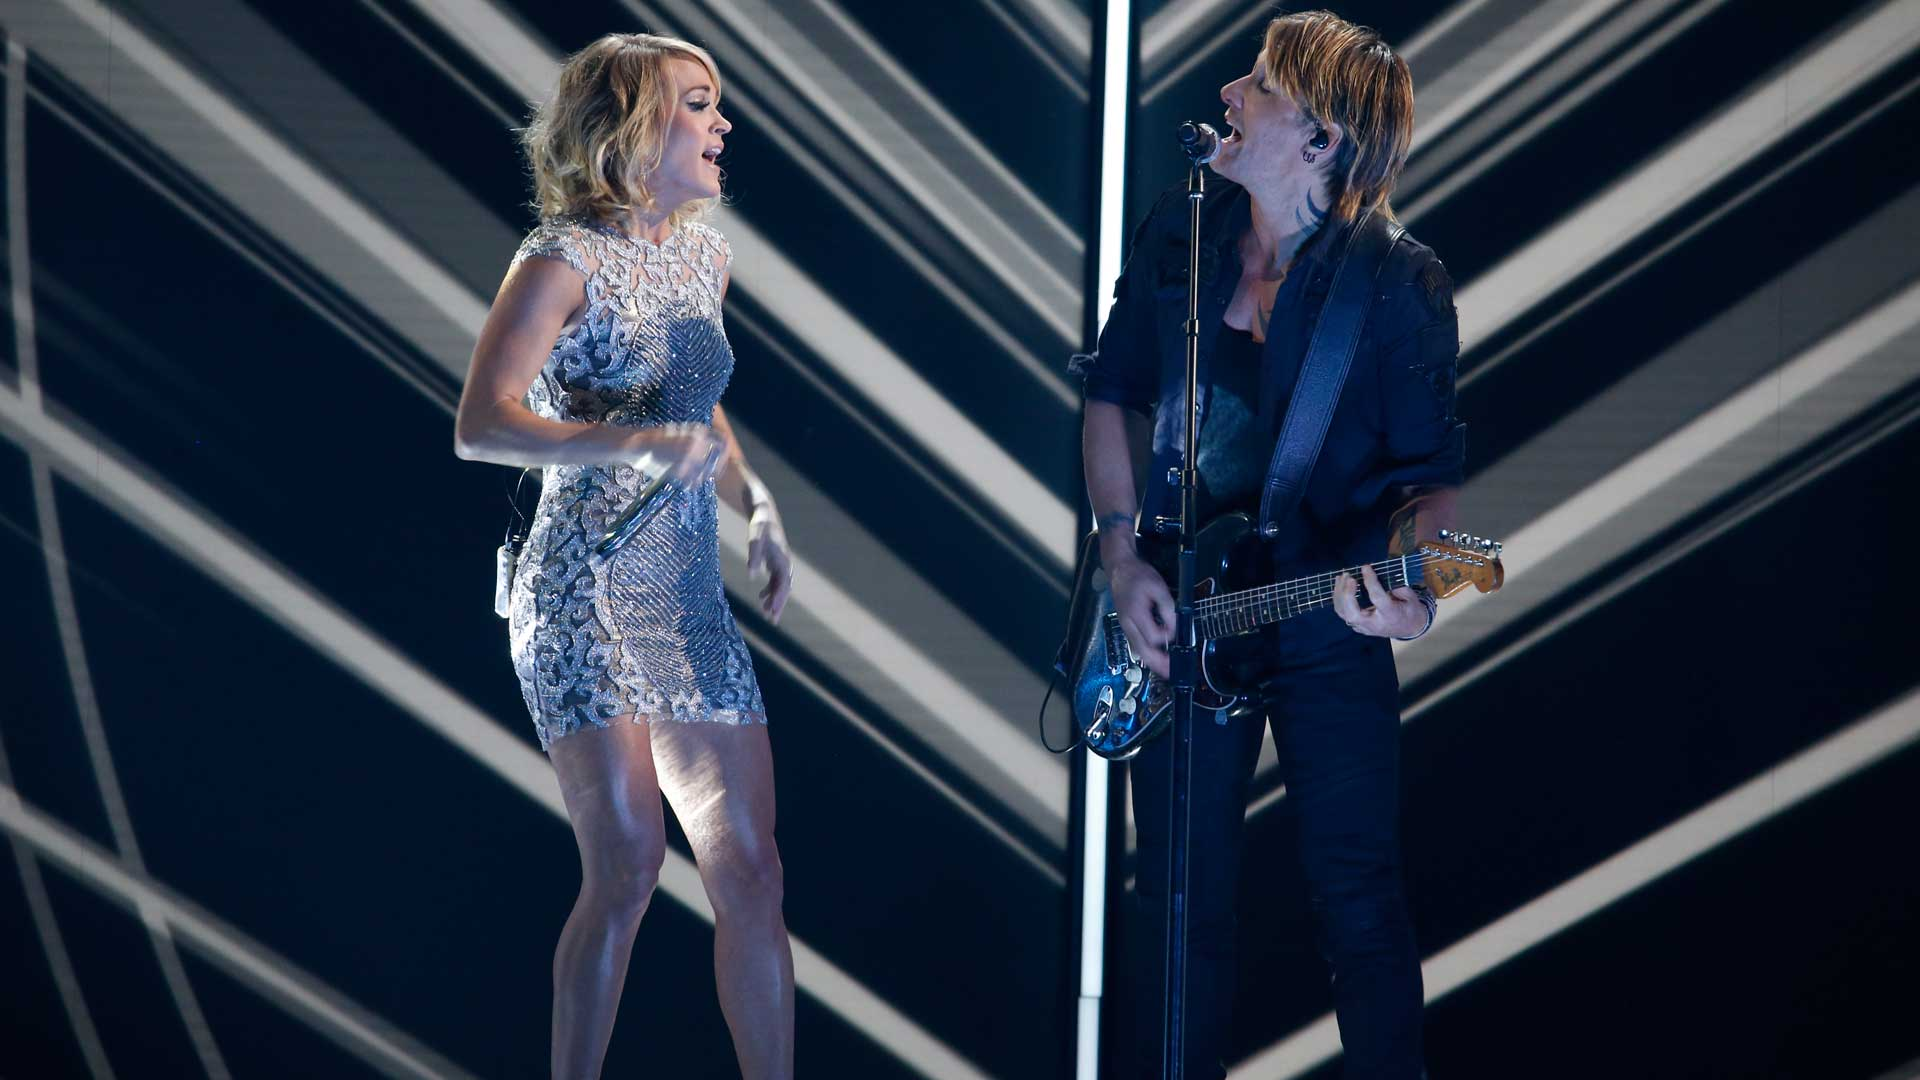 Carrie Underwood and Keith Urban perform